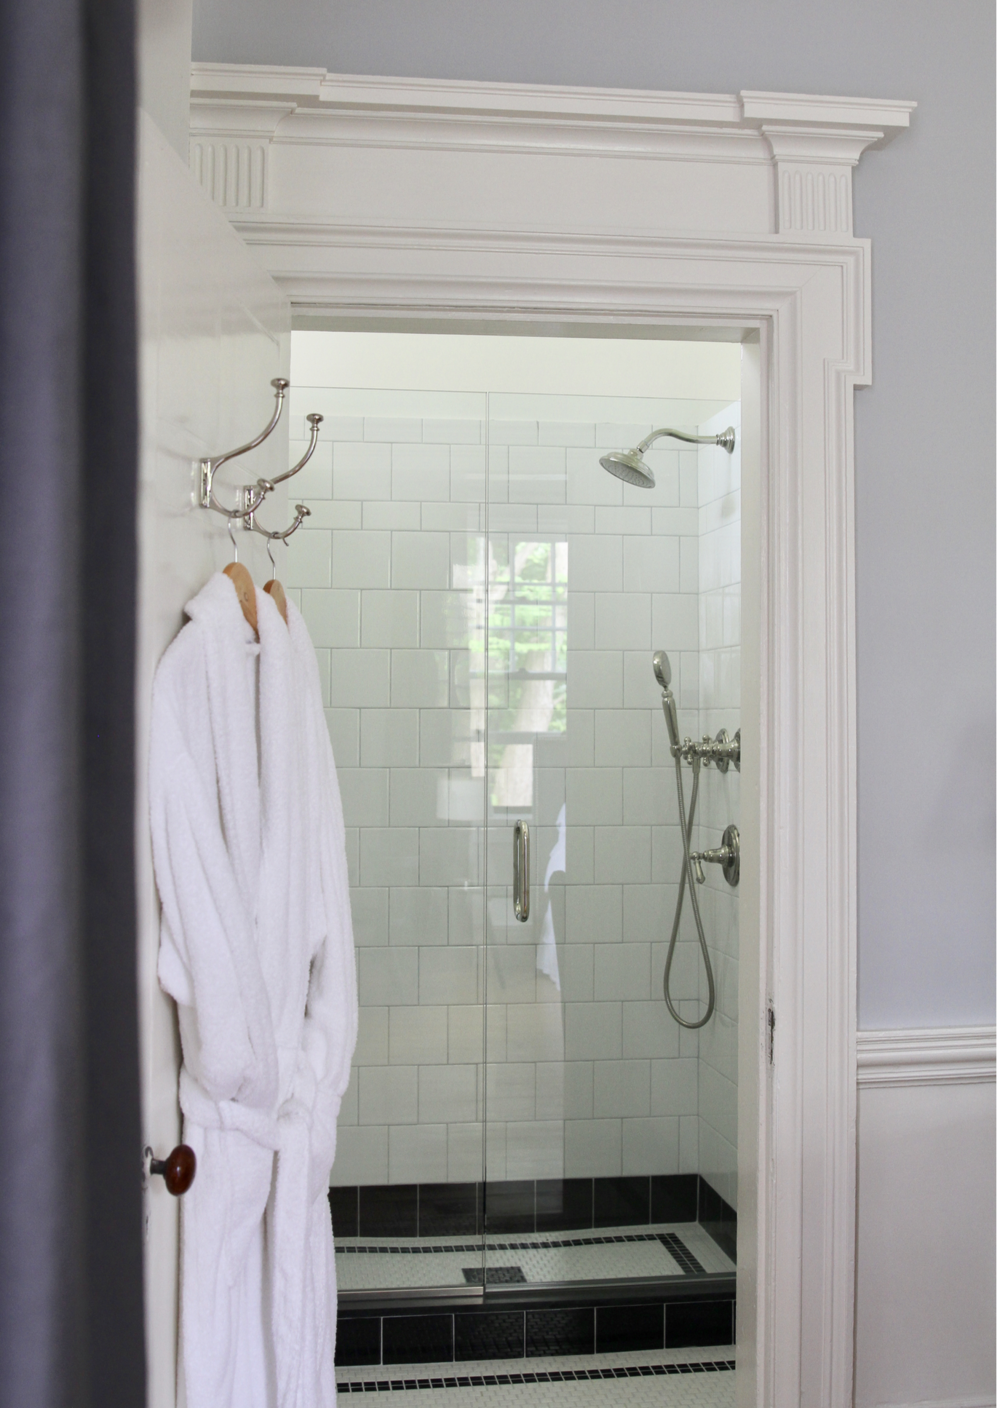 Room One   Room one features a glorious walk in shower room, with radiant heated mosaic tiled floors. Polished nickel fixtures. Toiletries are   Aesop  .